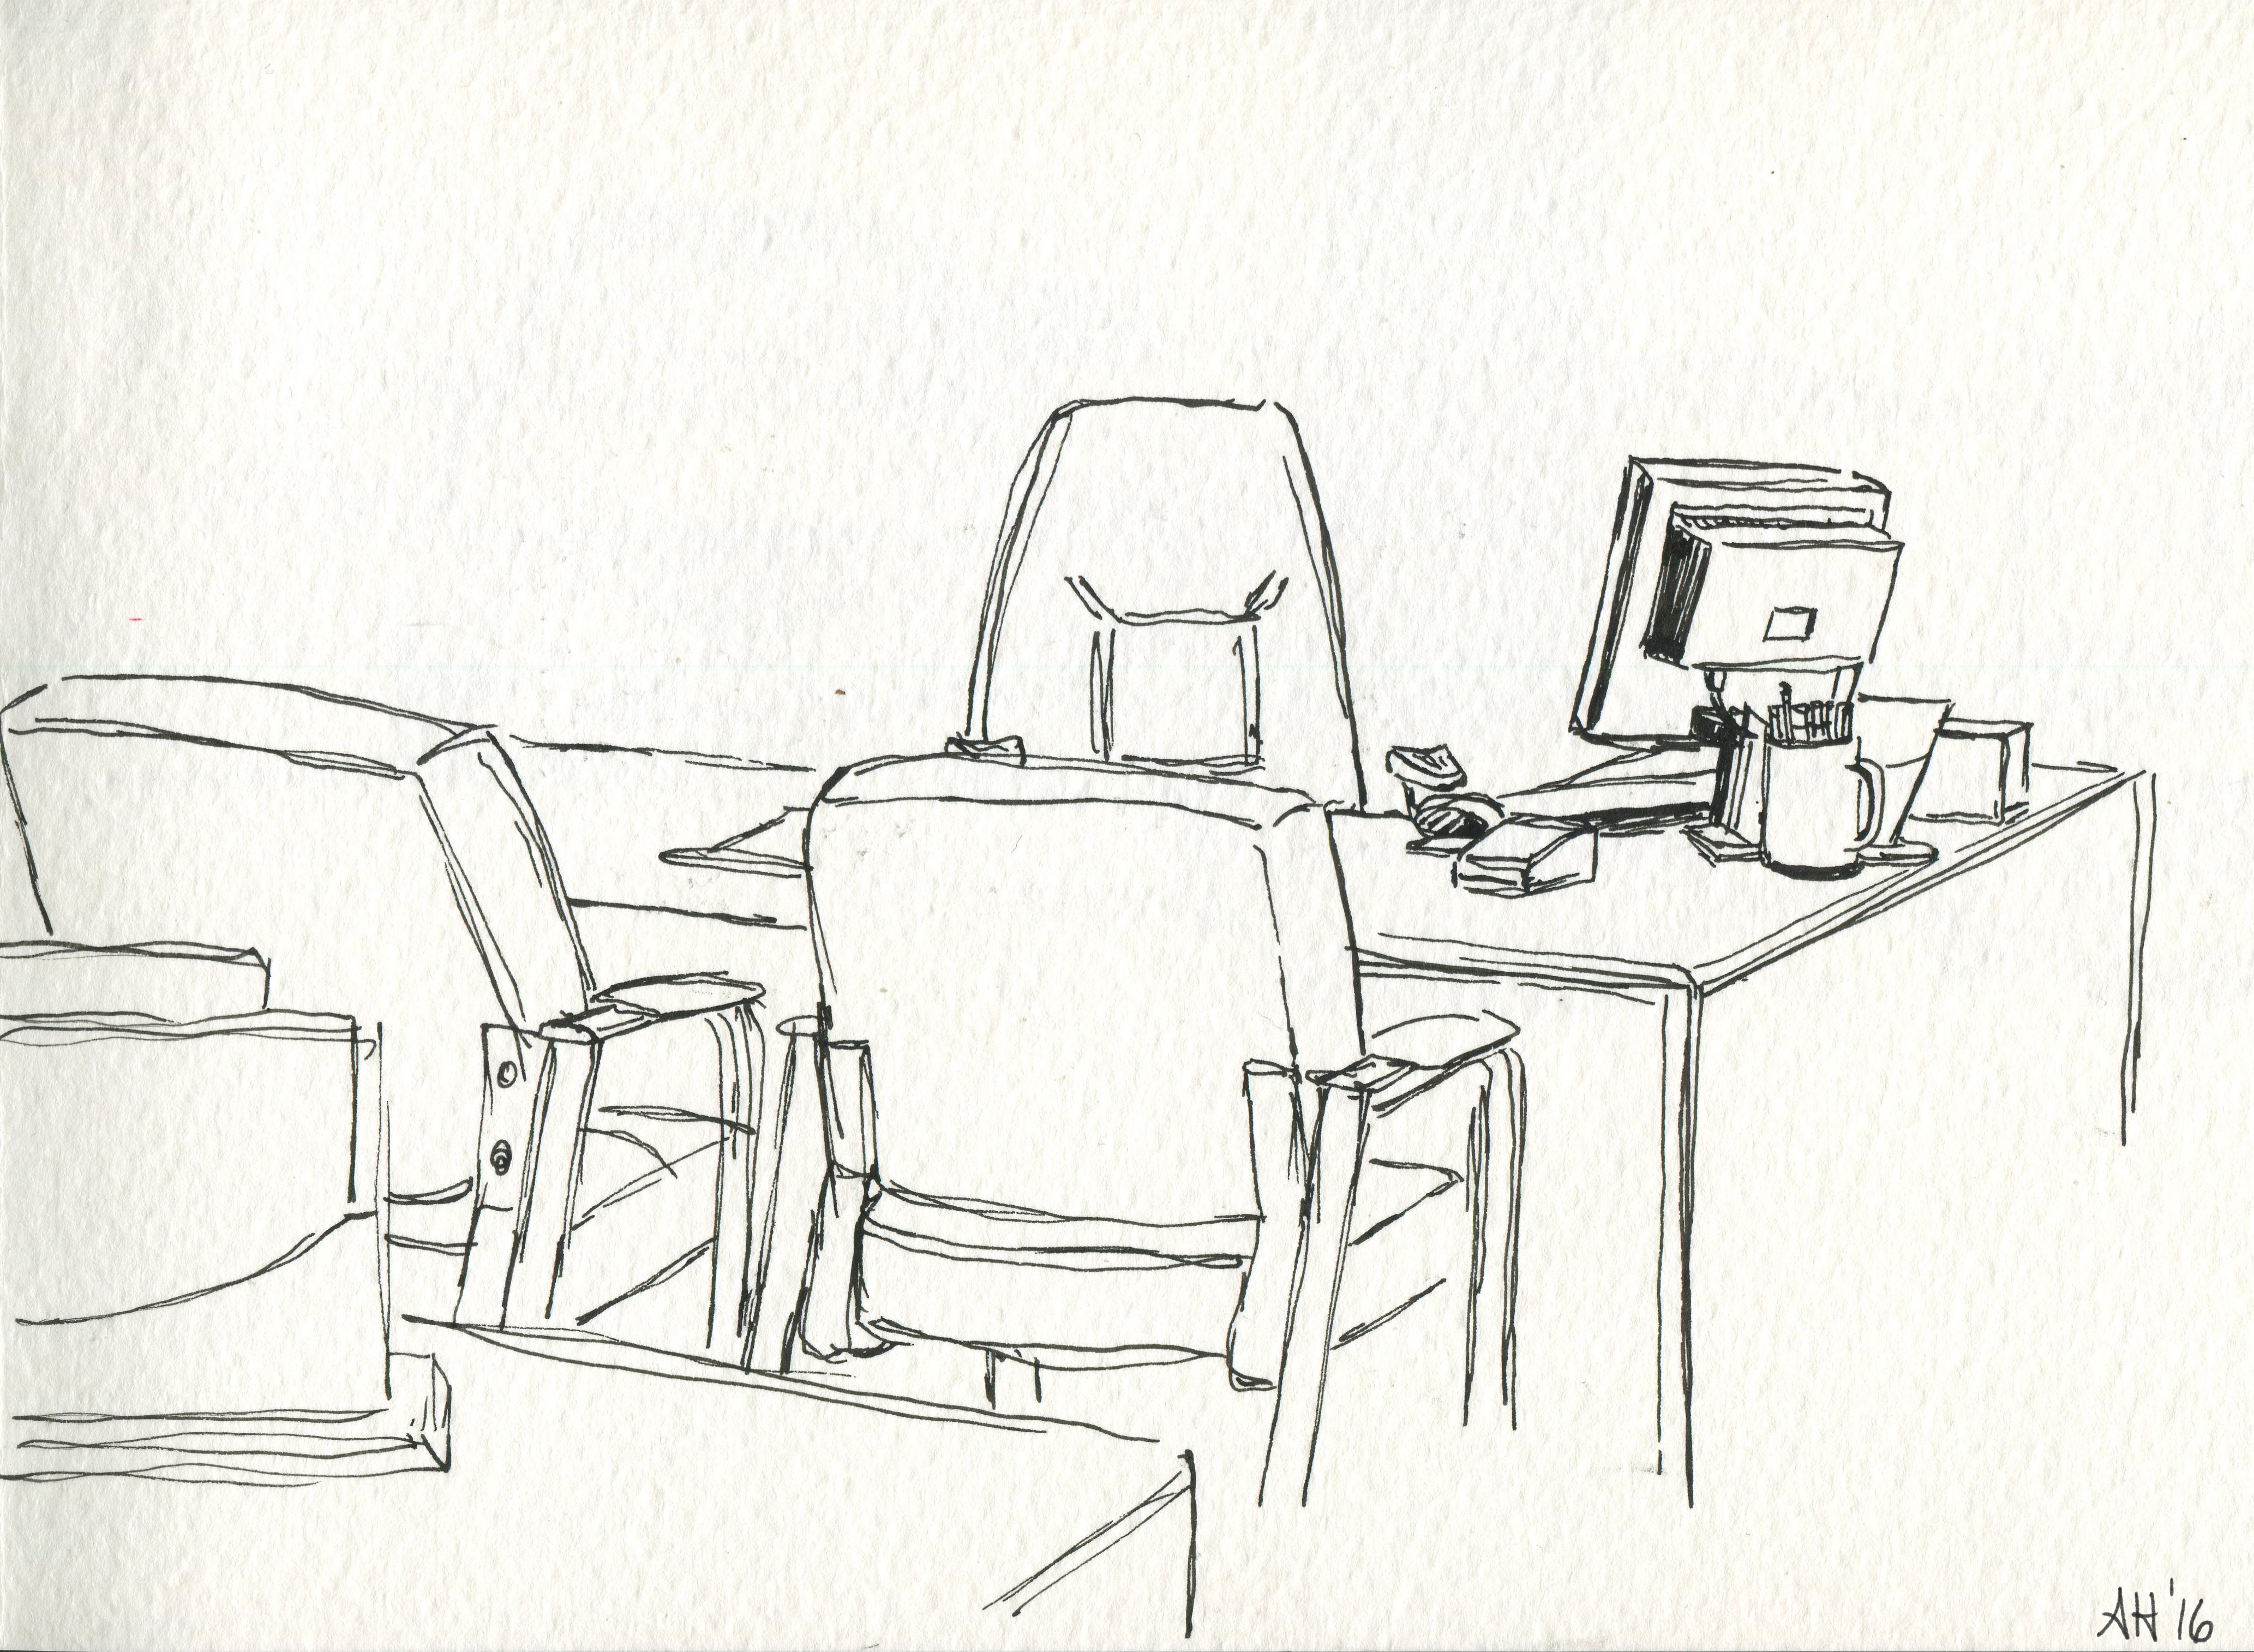 a sketch of an empty office desk at a bank by alleanna harris